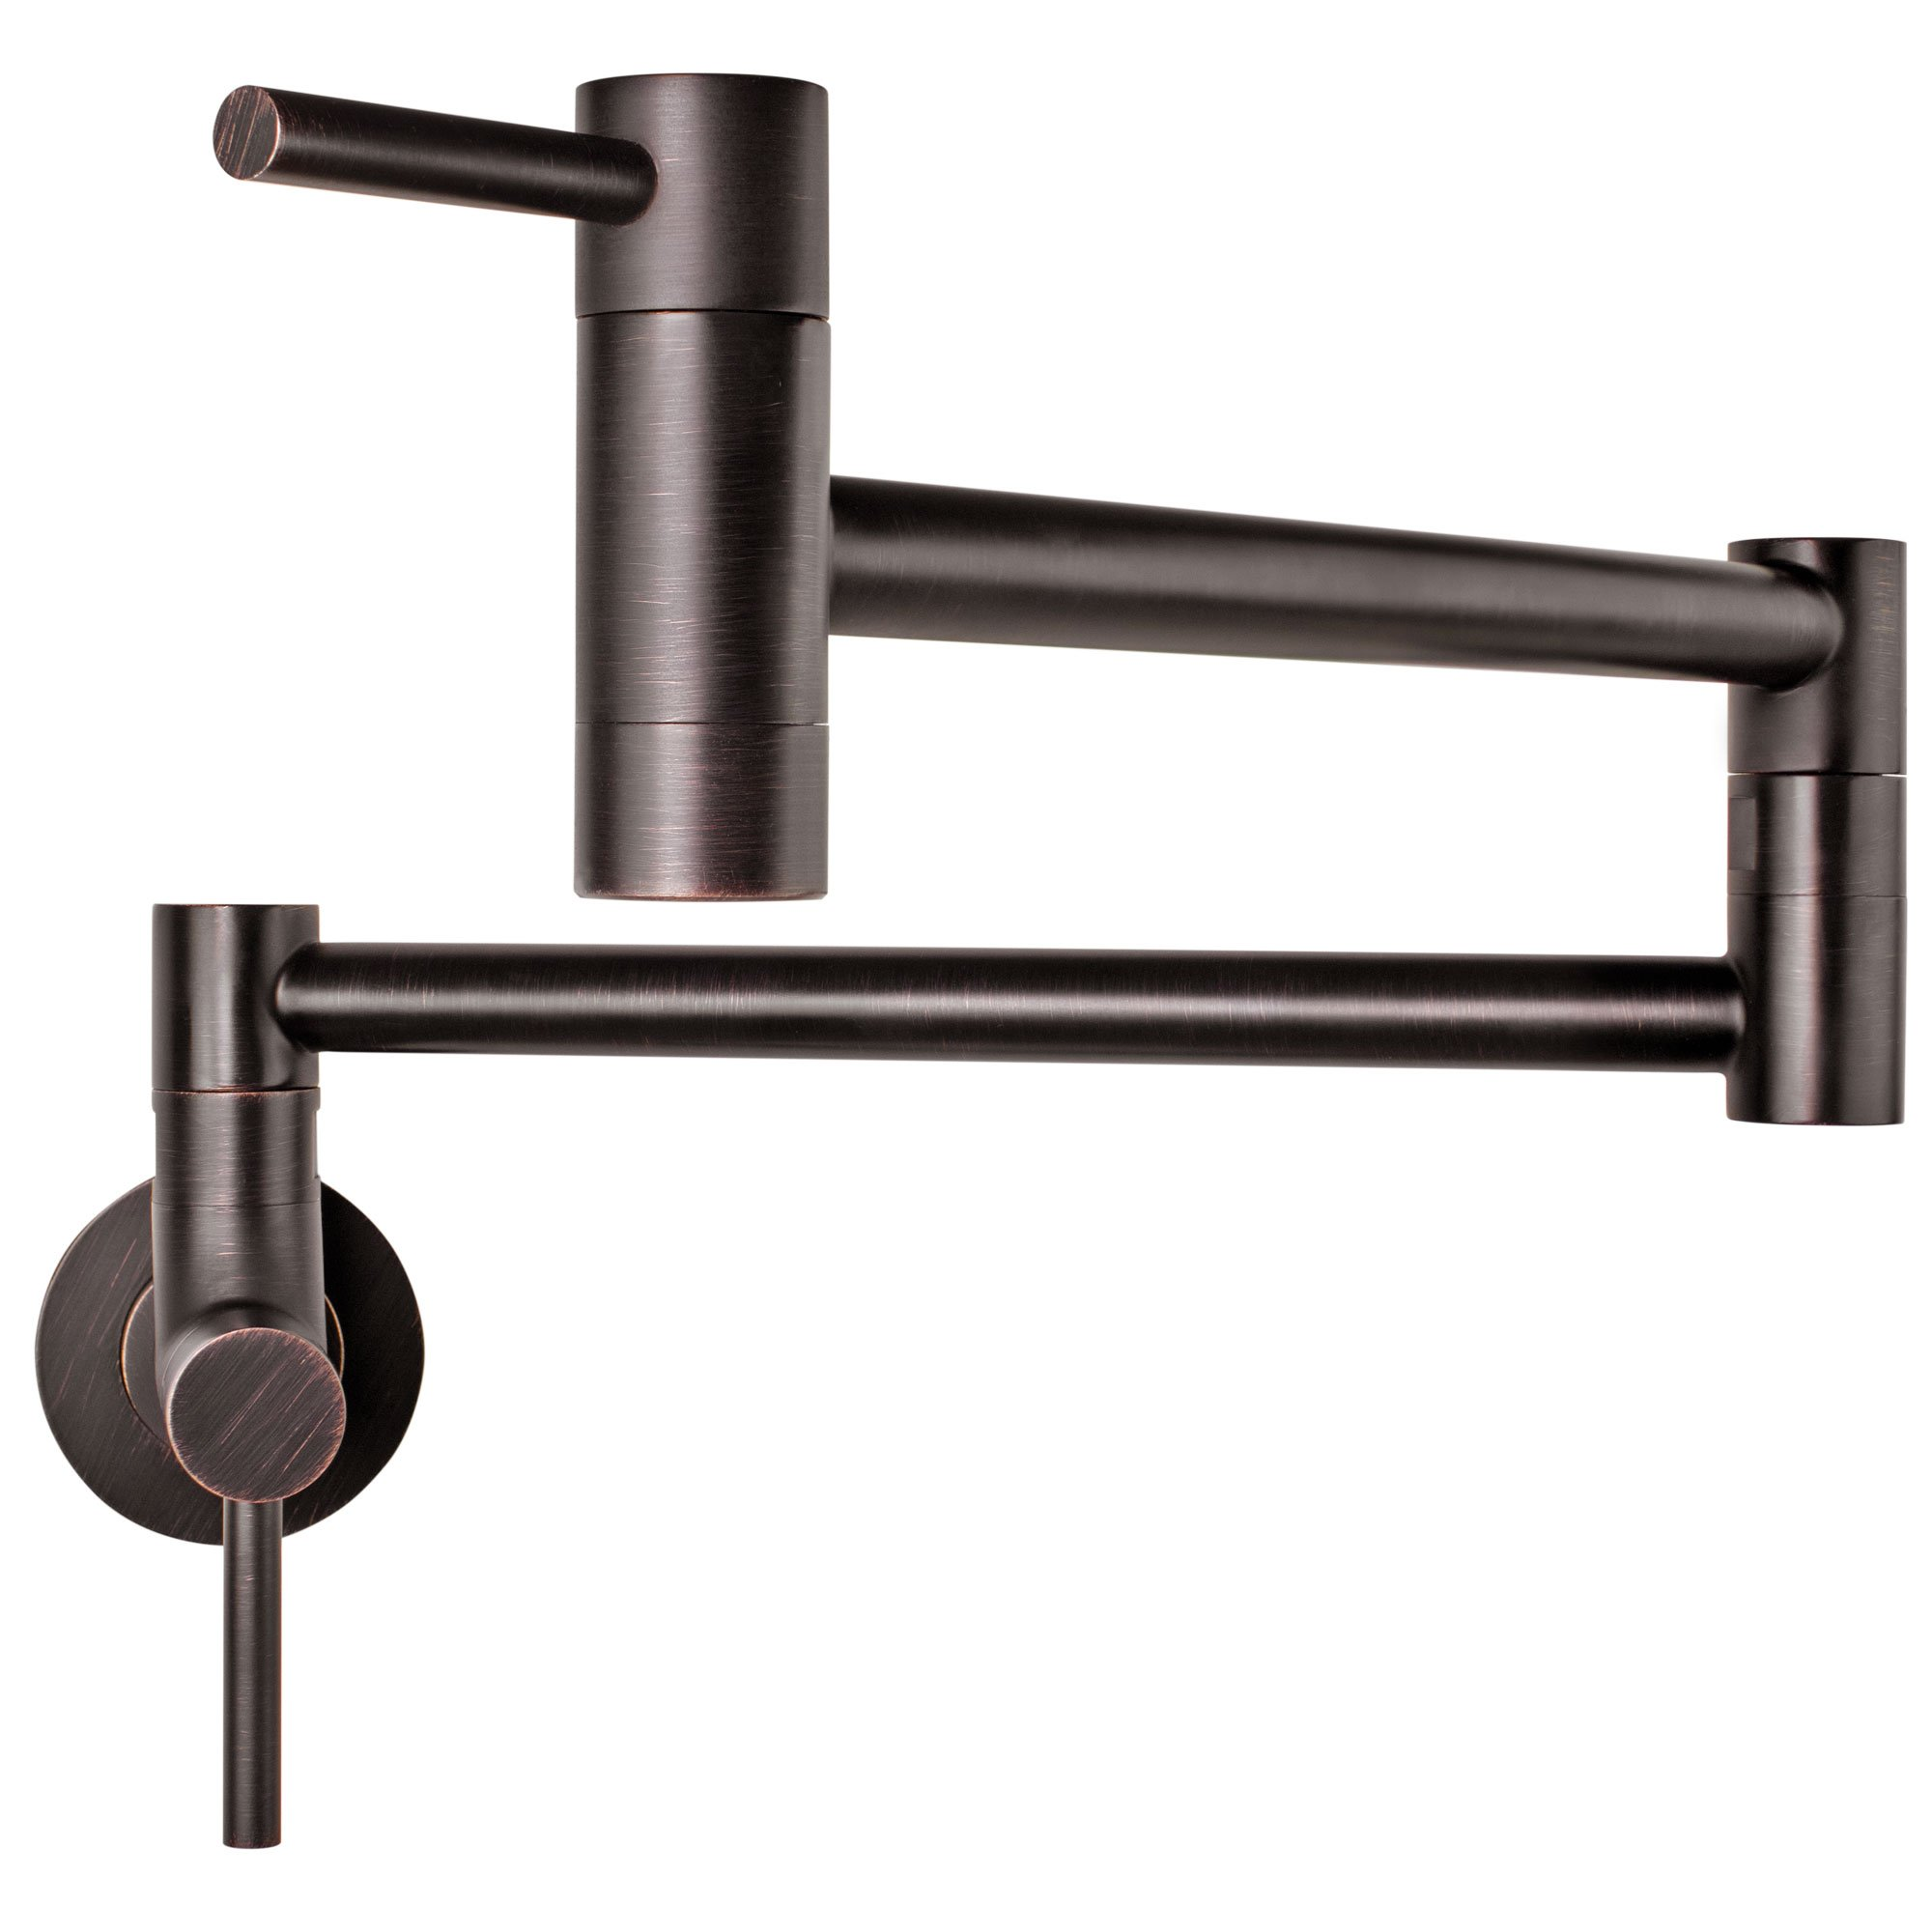 Geyser GF46-O Andorra Series Stainless Steel Wall Mount Two Handle Pot Filler Faucet (Oil Rubbed Bronze Finish)